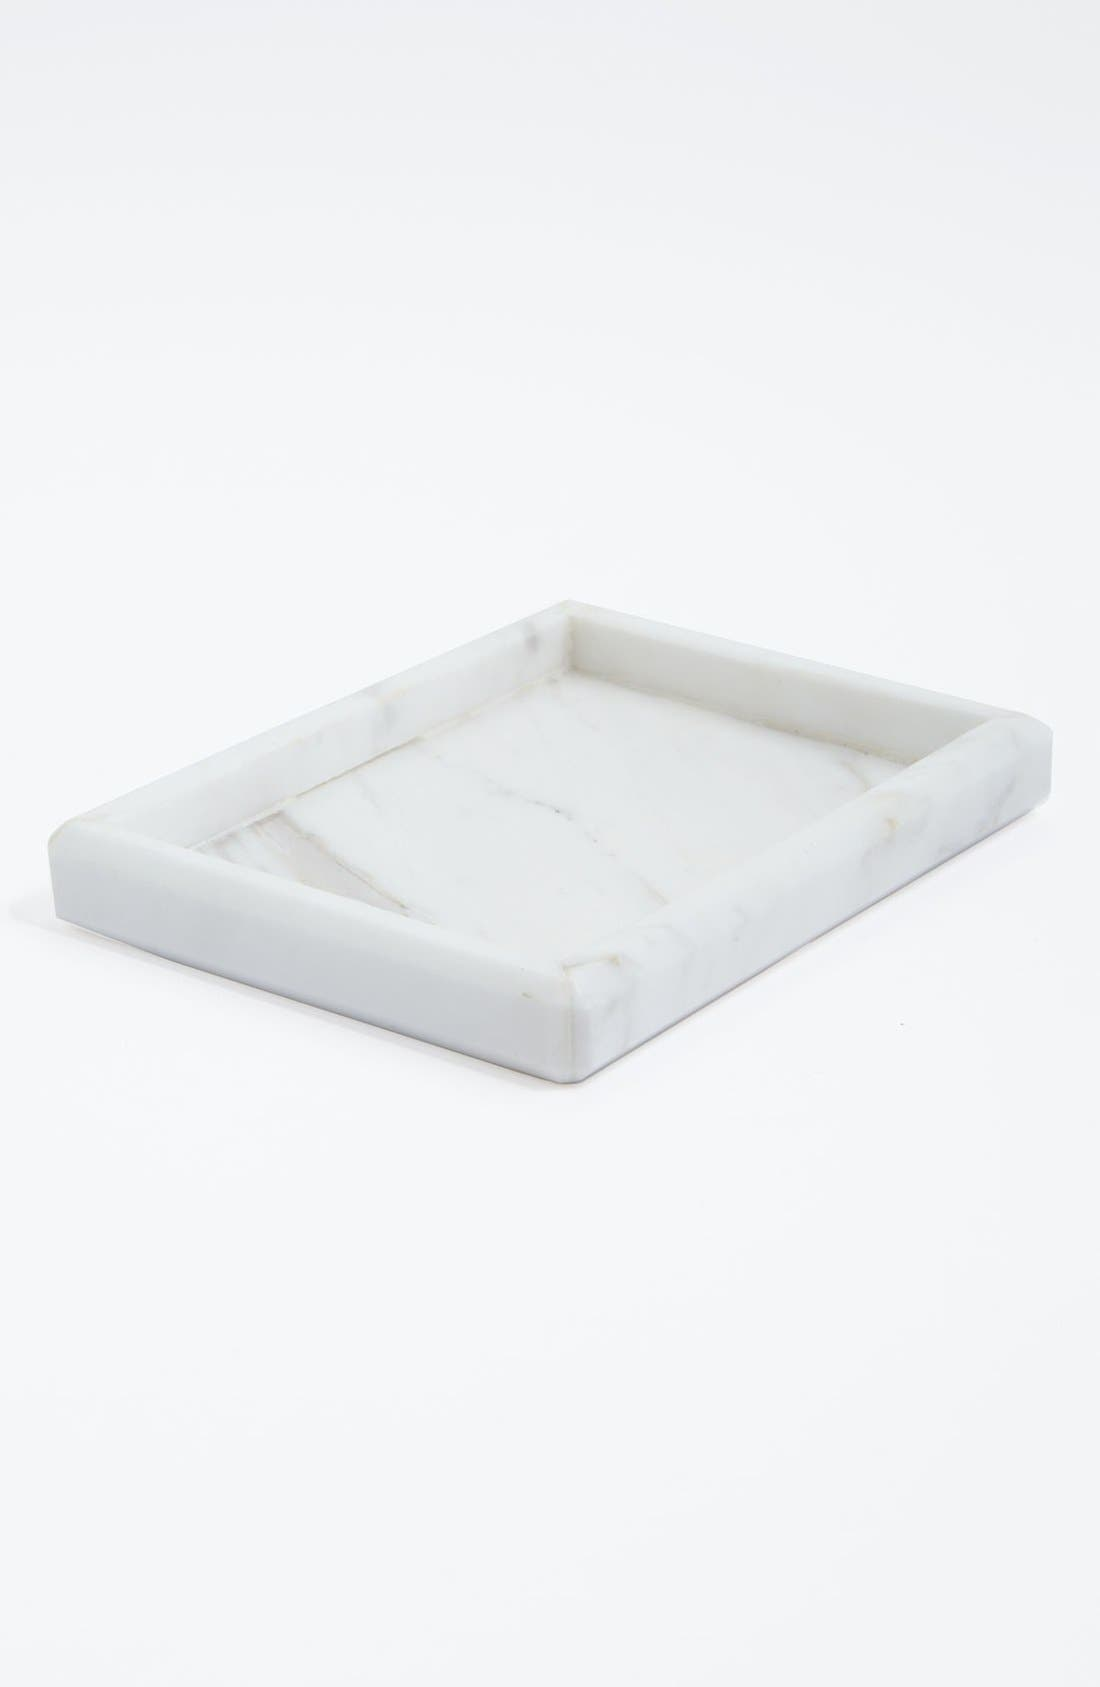 Alternate Image 1 Selected - Waterworks Studio 'Luna' White Marble Soap Dish (Online Only)